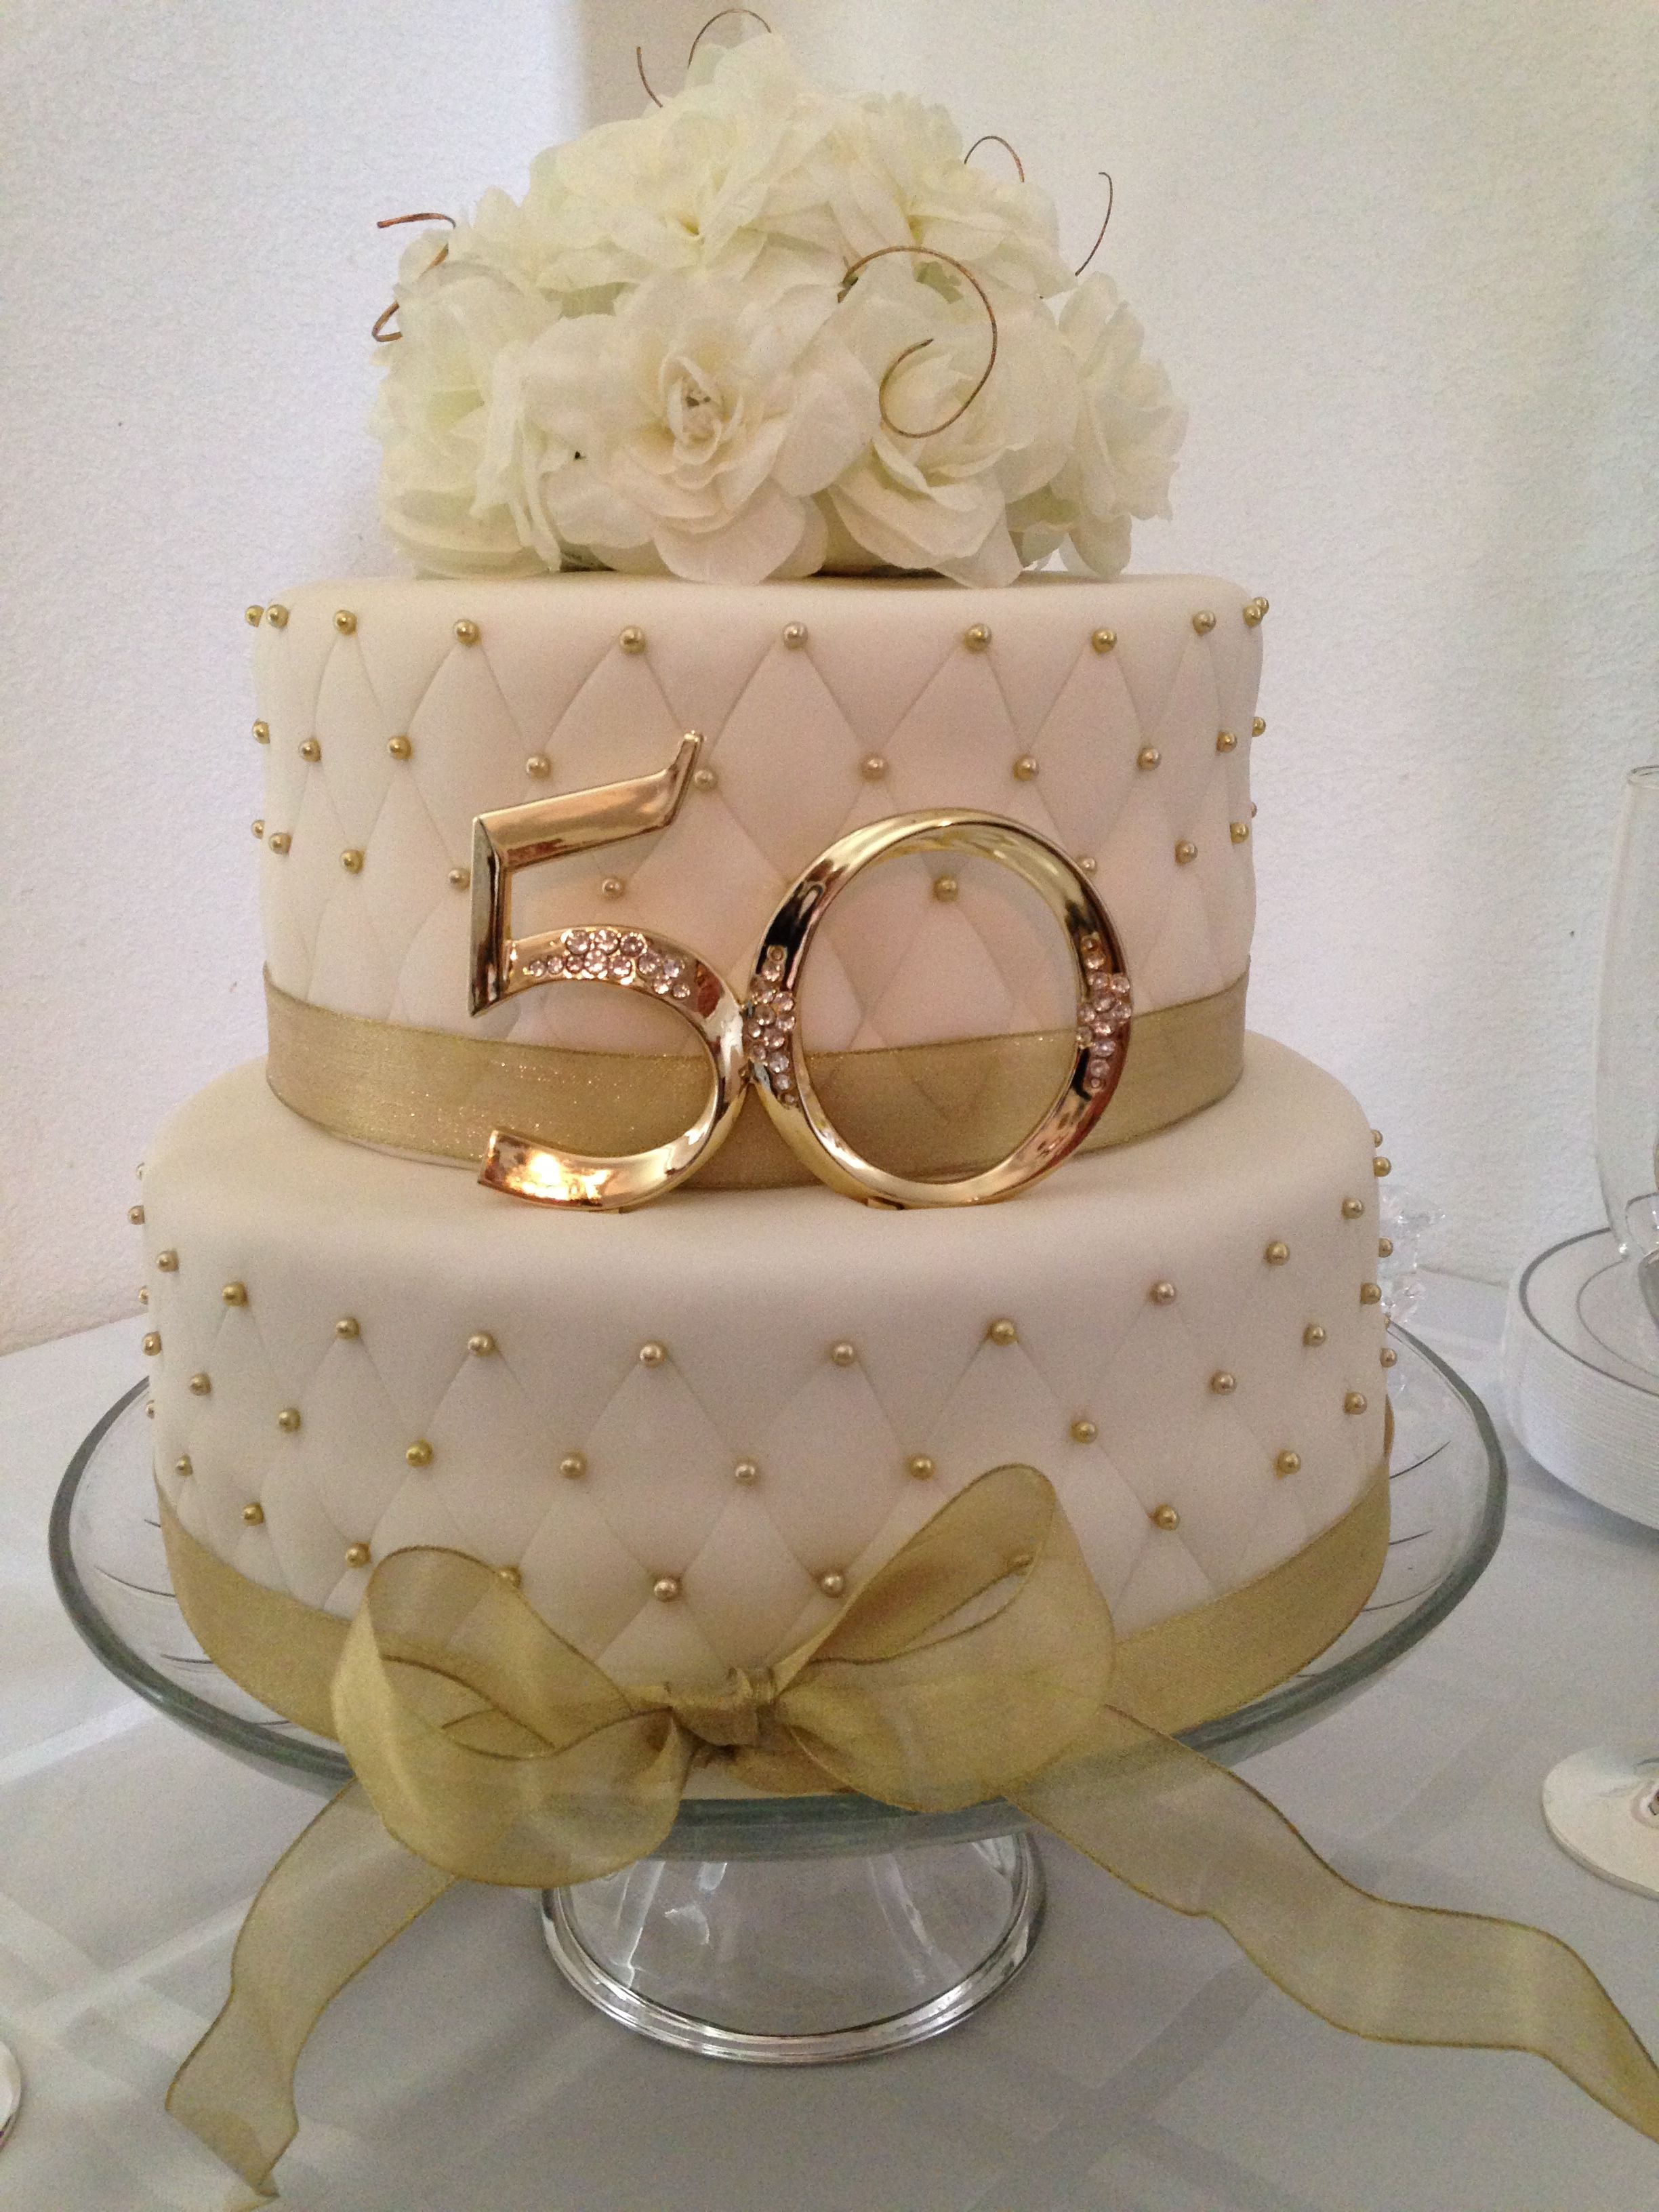 Anniversary 50th anniversary cake cakes pinterest for 50th wedding anniversary cake decoration ideas